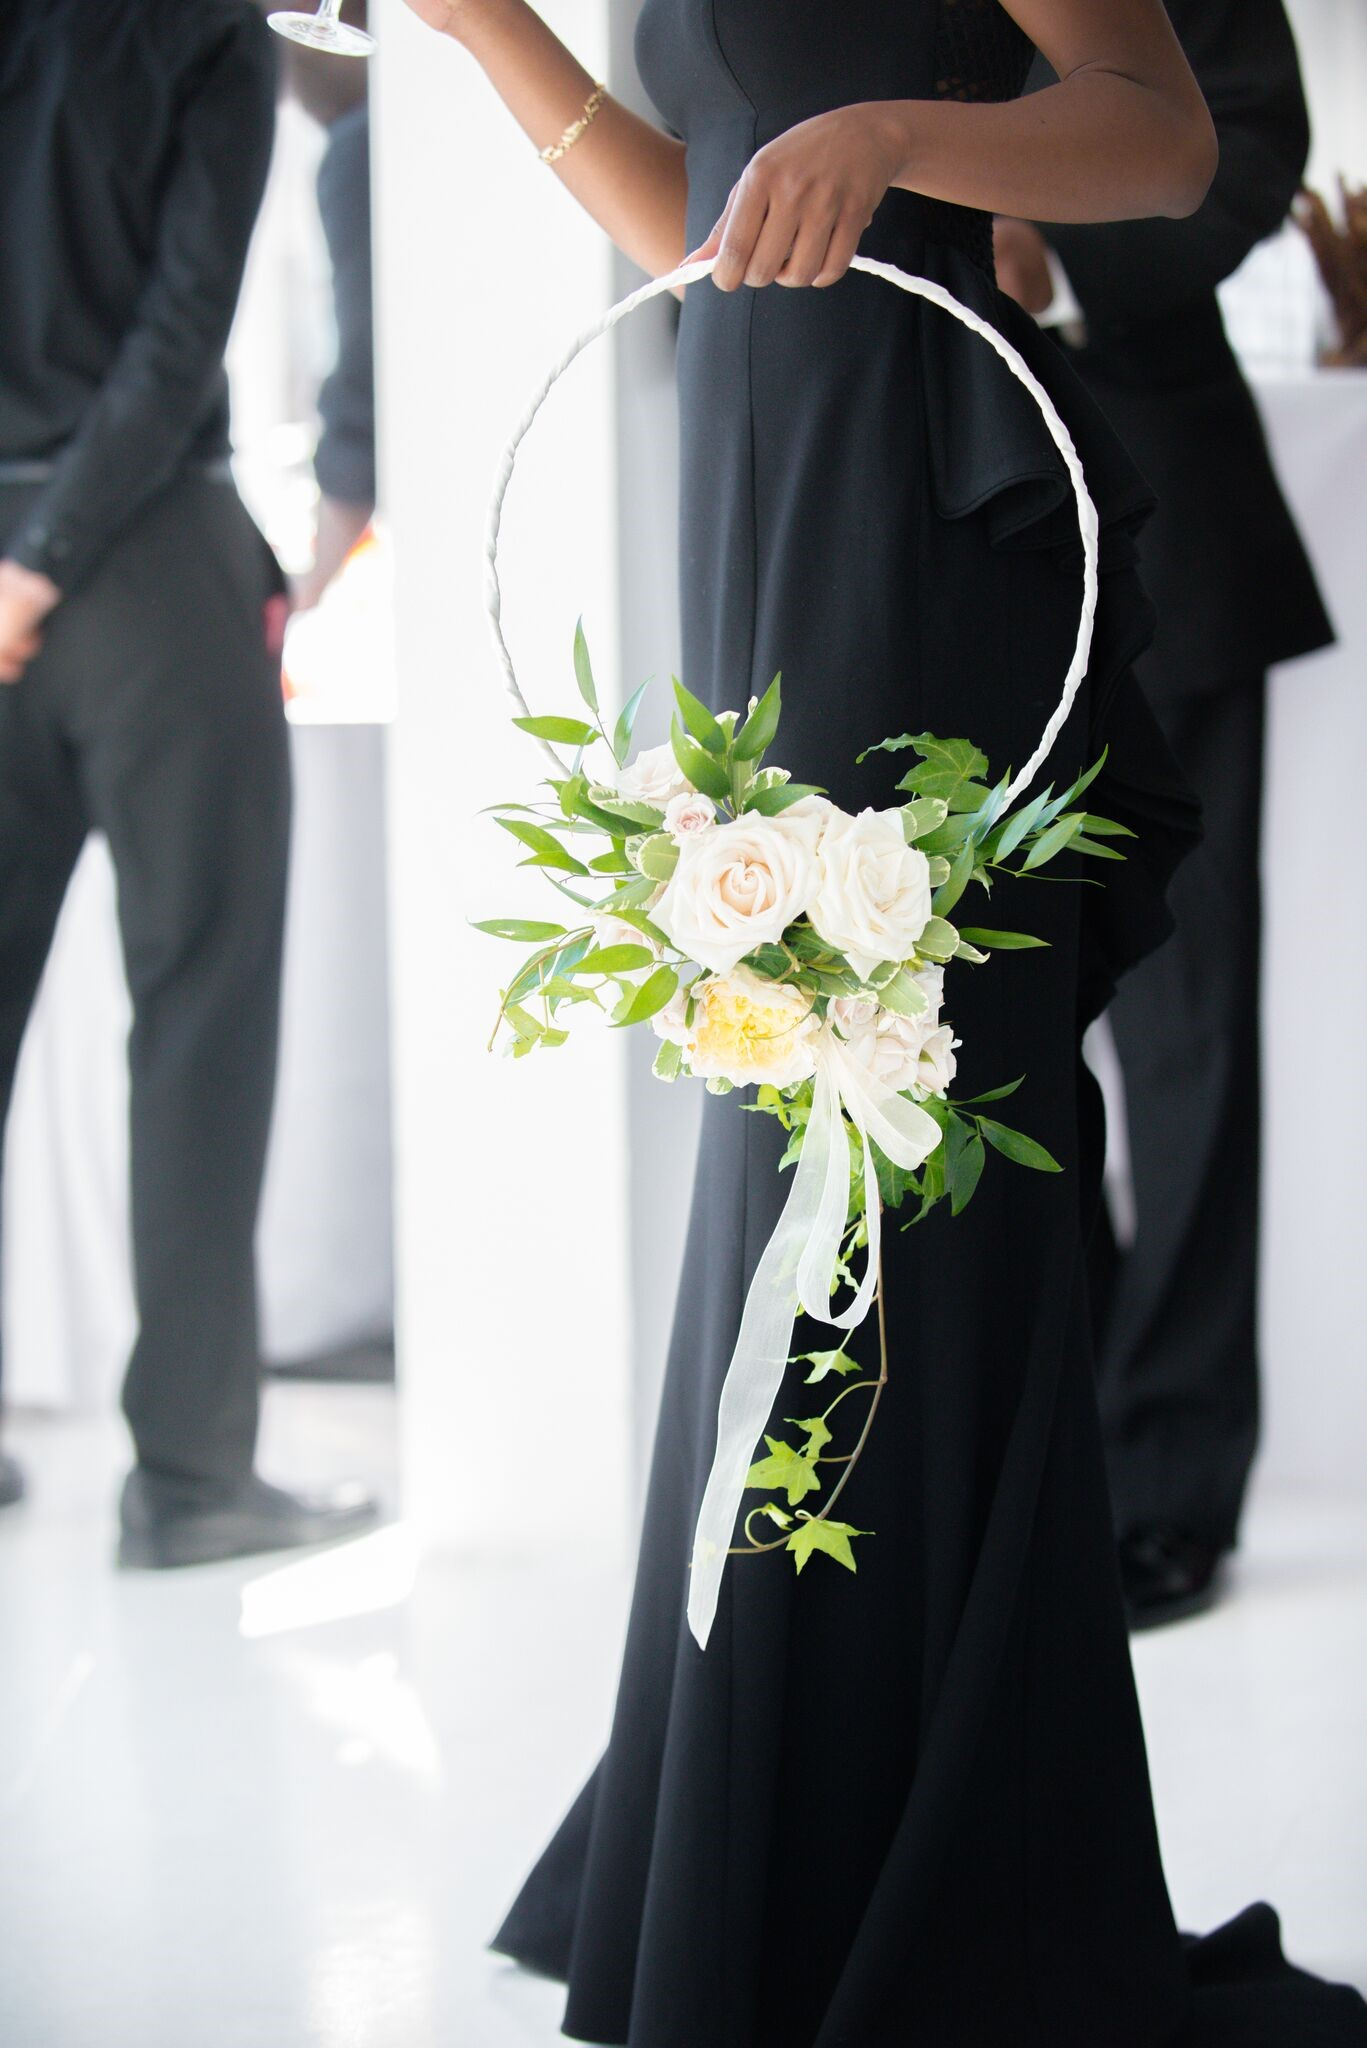 """Ring """"bouquet"""" by Ray of Heights Florist, Hasbrouck Heights, NJ"""